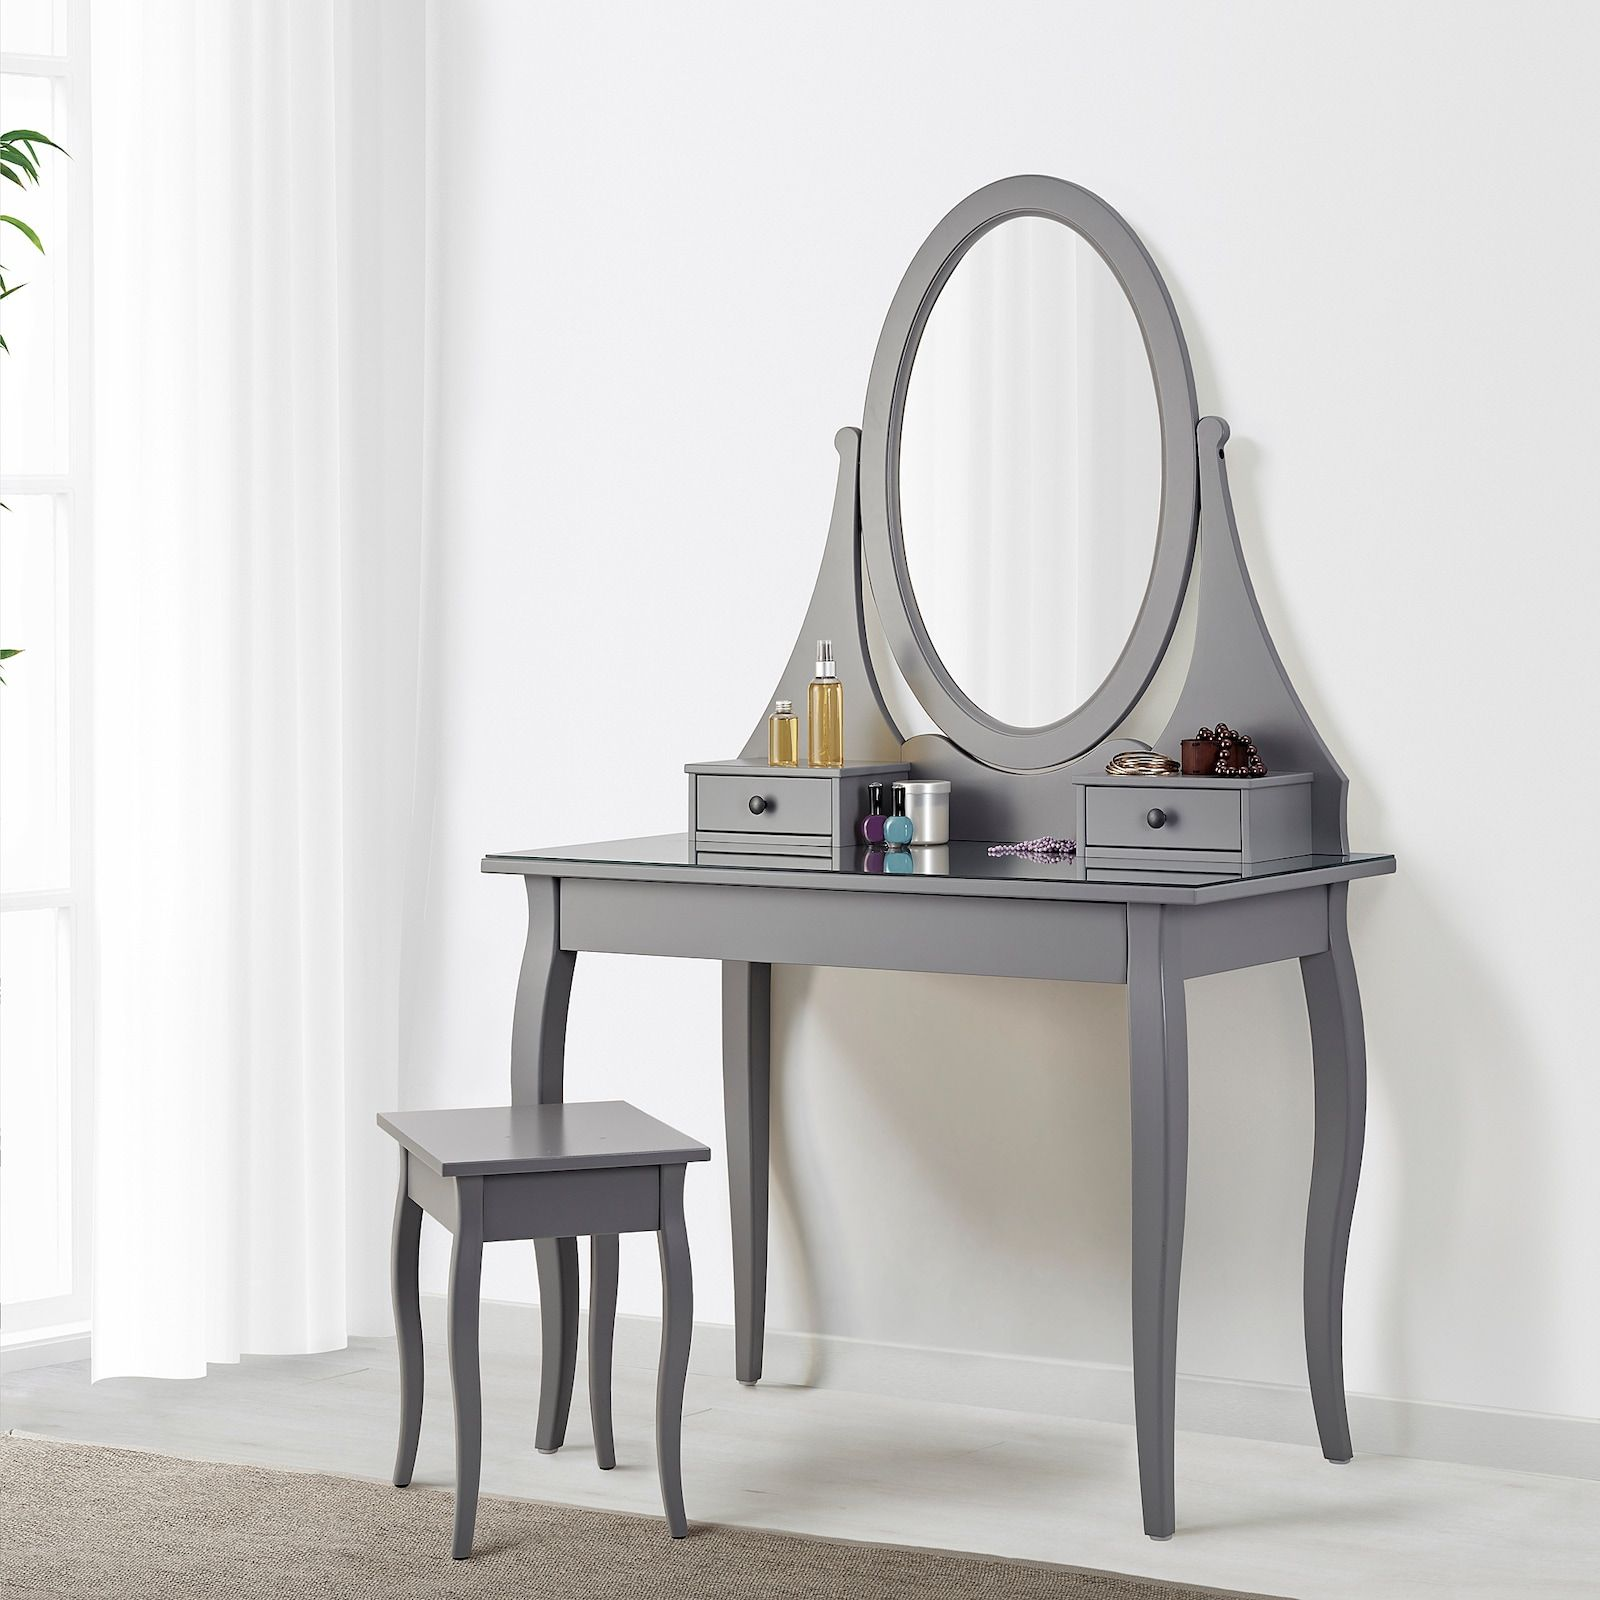 HEMNES grey, Dressing table with mirror, 100x50 cm - IKEA